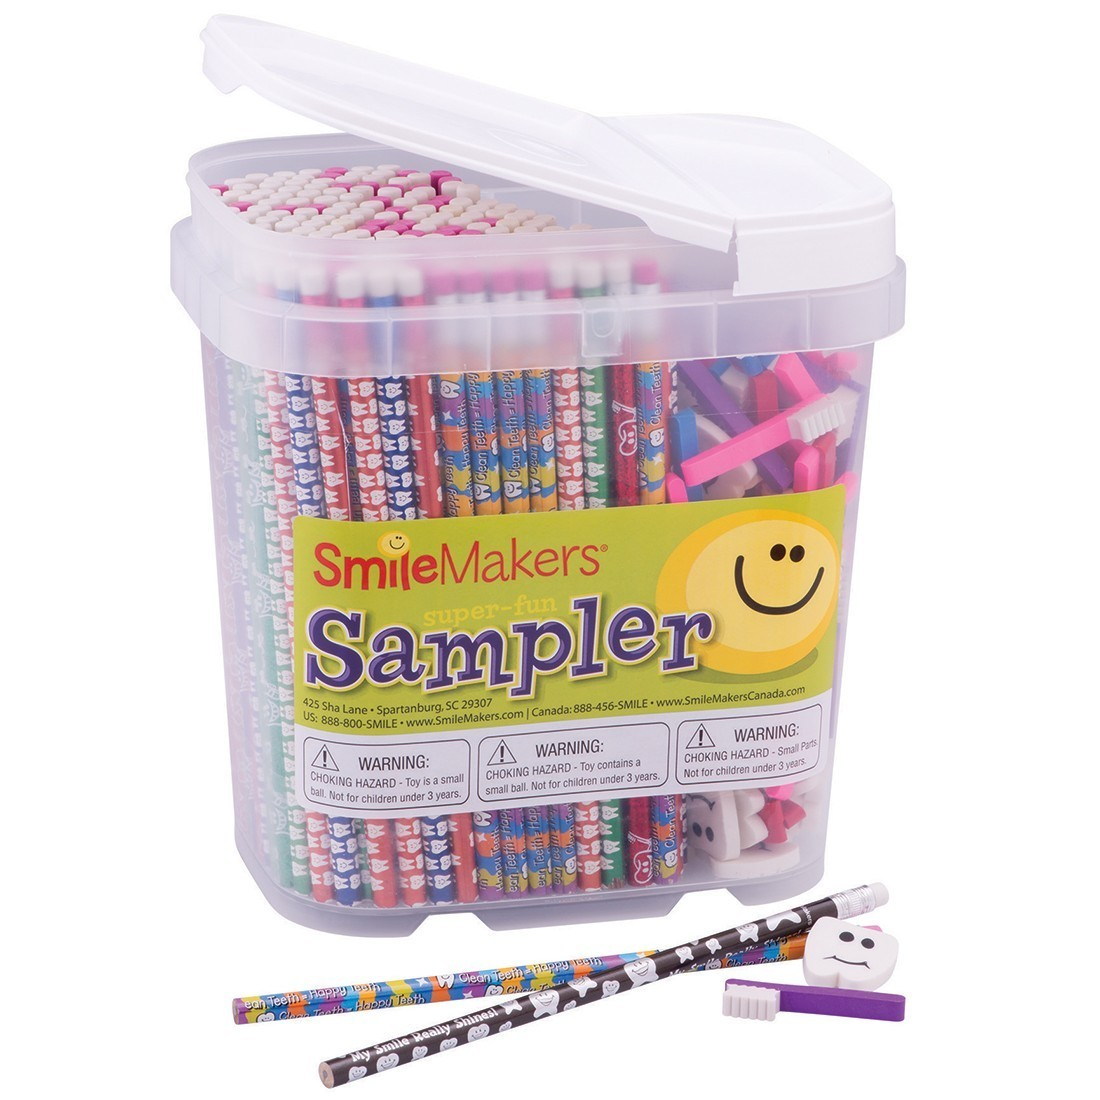 Dental Pencil & Eraser Sampler [image]